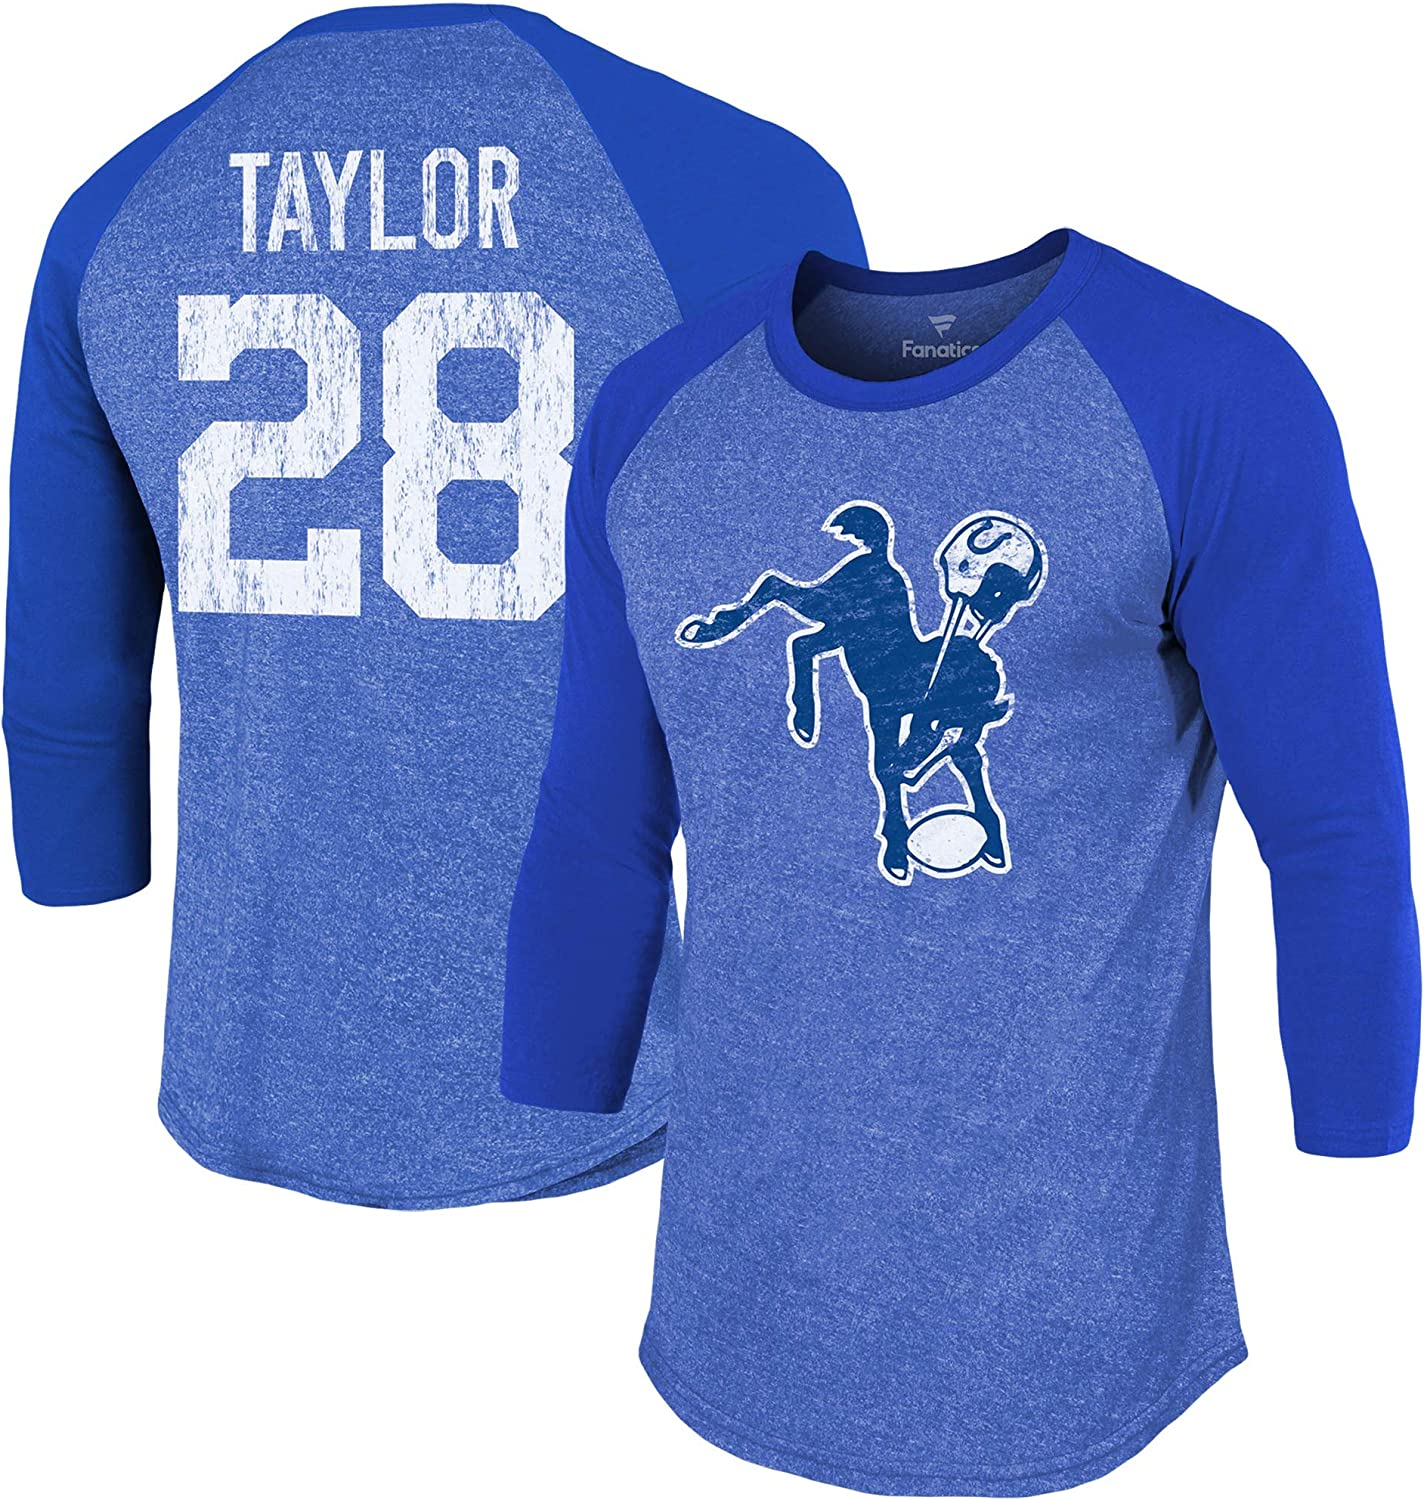 Fanatics Men's Jonathan Taylor Royal Free 67% OFF of fixed price shipping on posting reviews Indianapolis Team Pla Colts